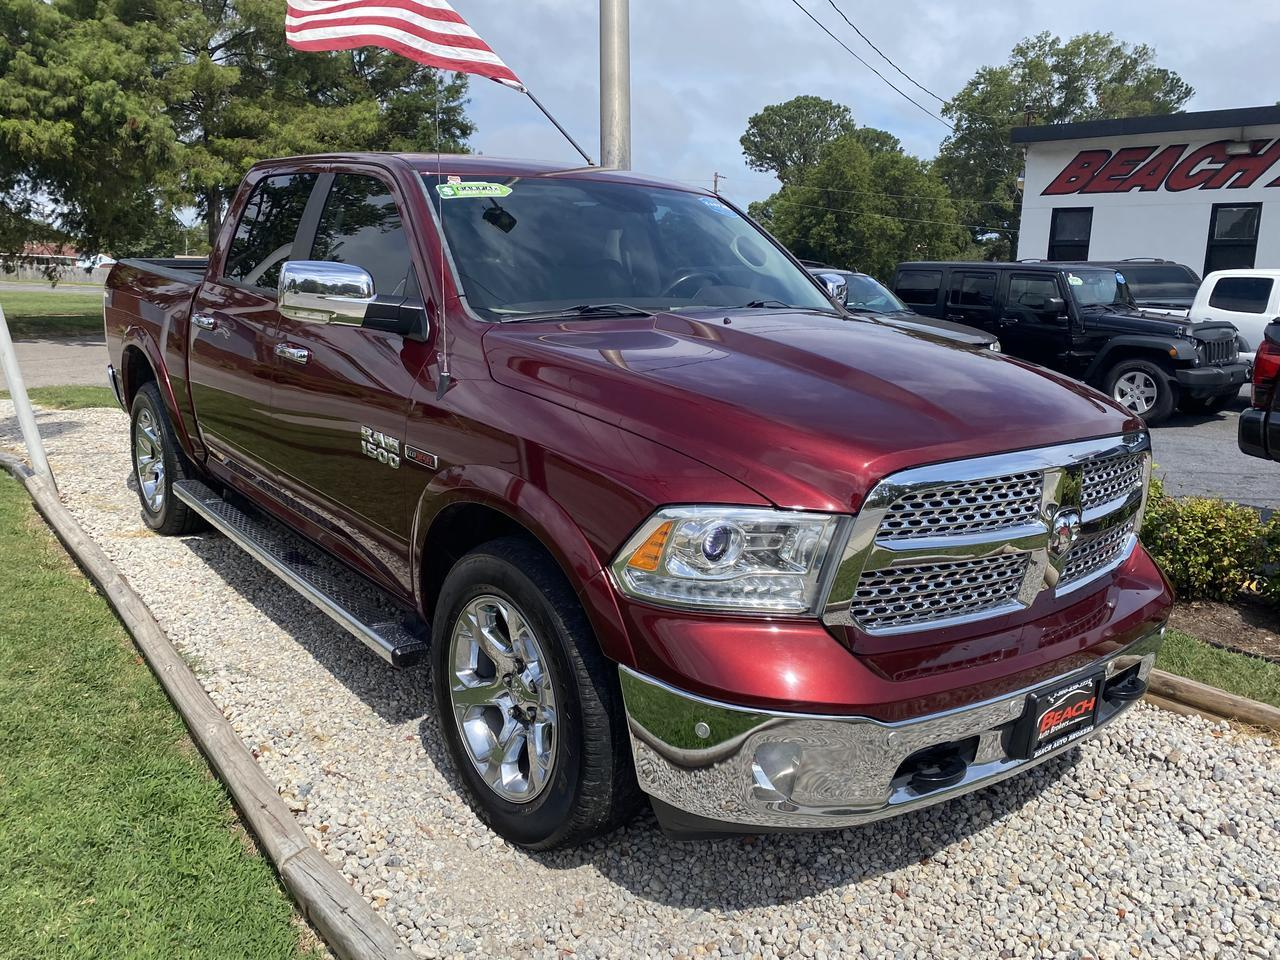 2016 DODGE RAM 1500 LARAMIE CREW CAB, WARRANTY, ECO DIESEL, LEATHER, HEATED SEATS, BACKUP CAM,  NAV! Norfolk VA